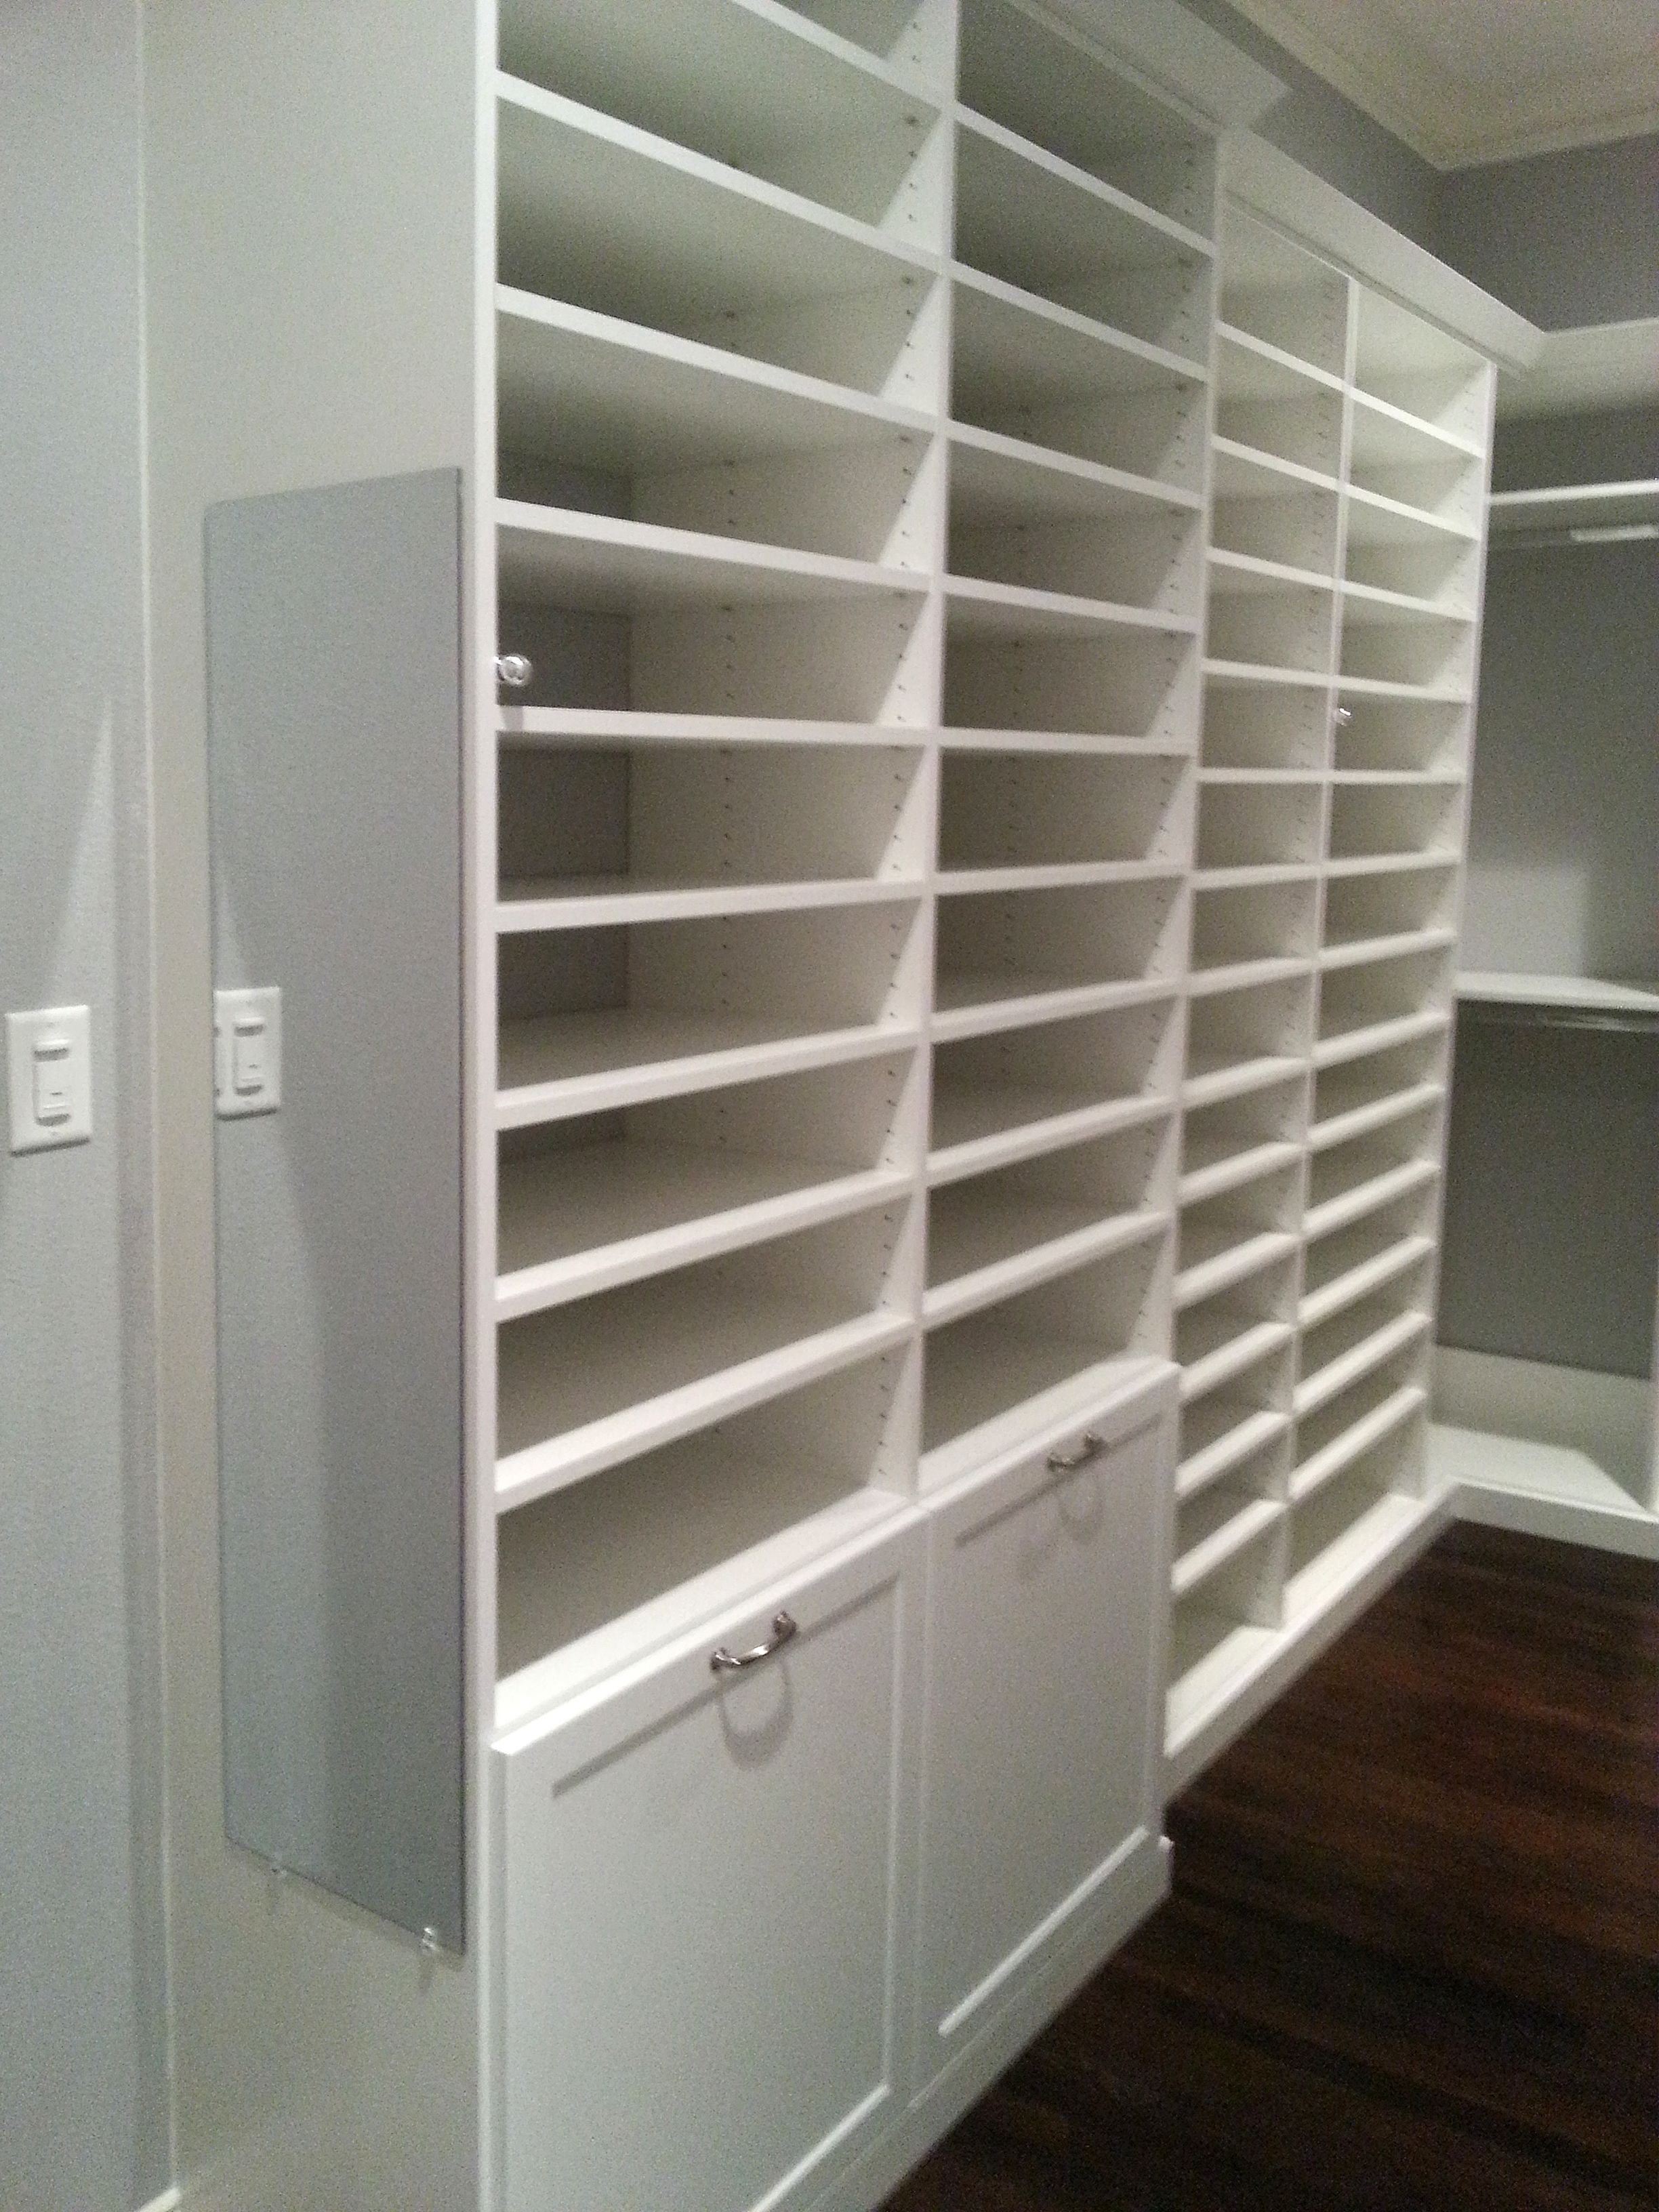 So Much Shoe Storage Potential In This Custom Closet!